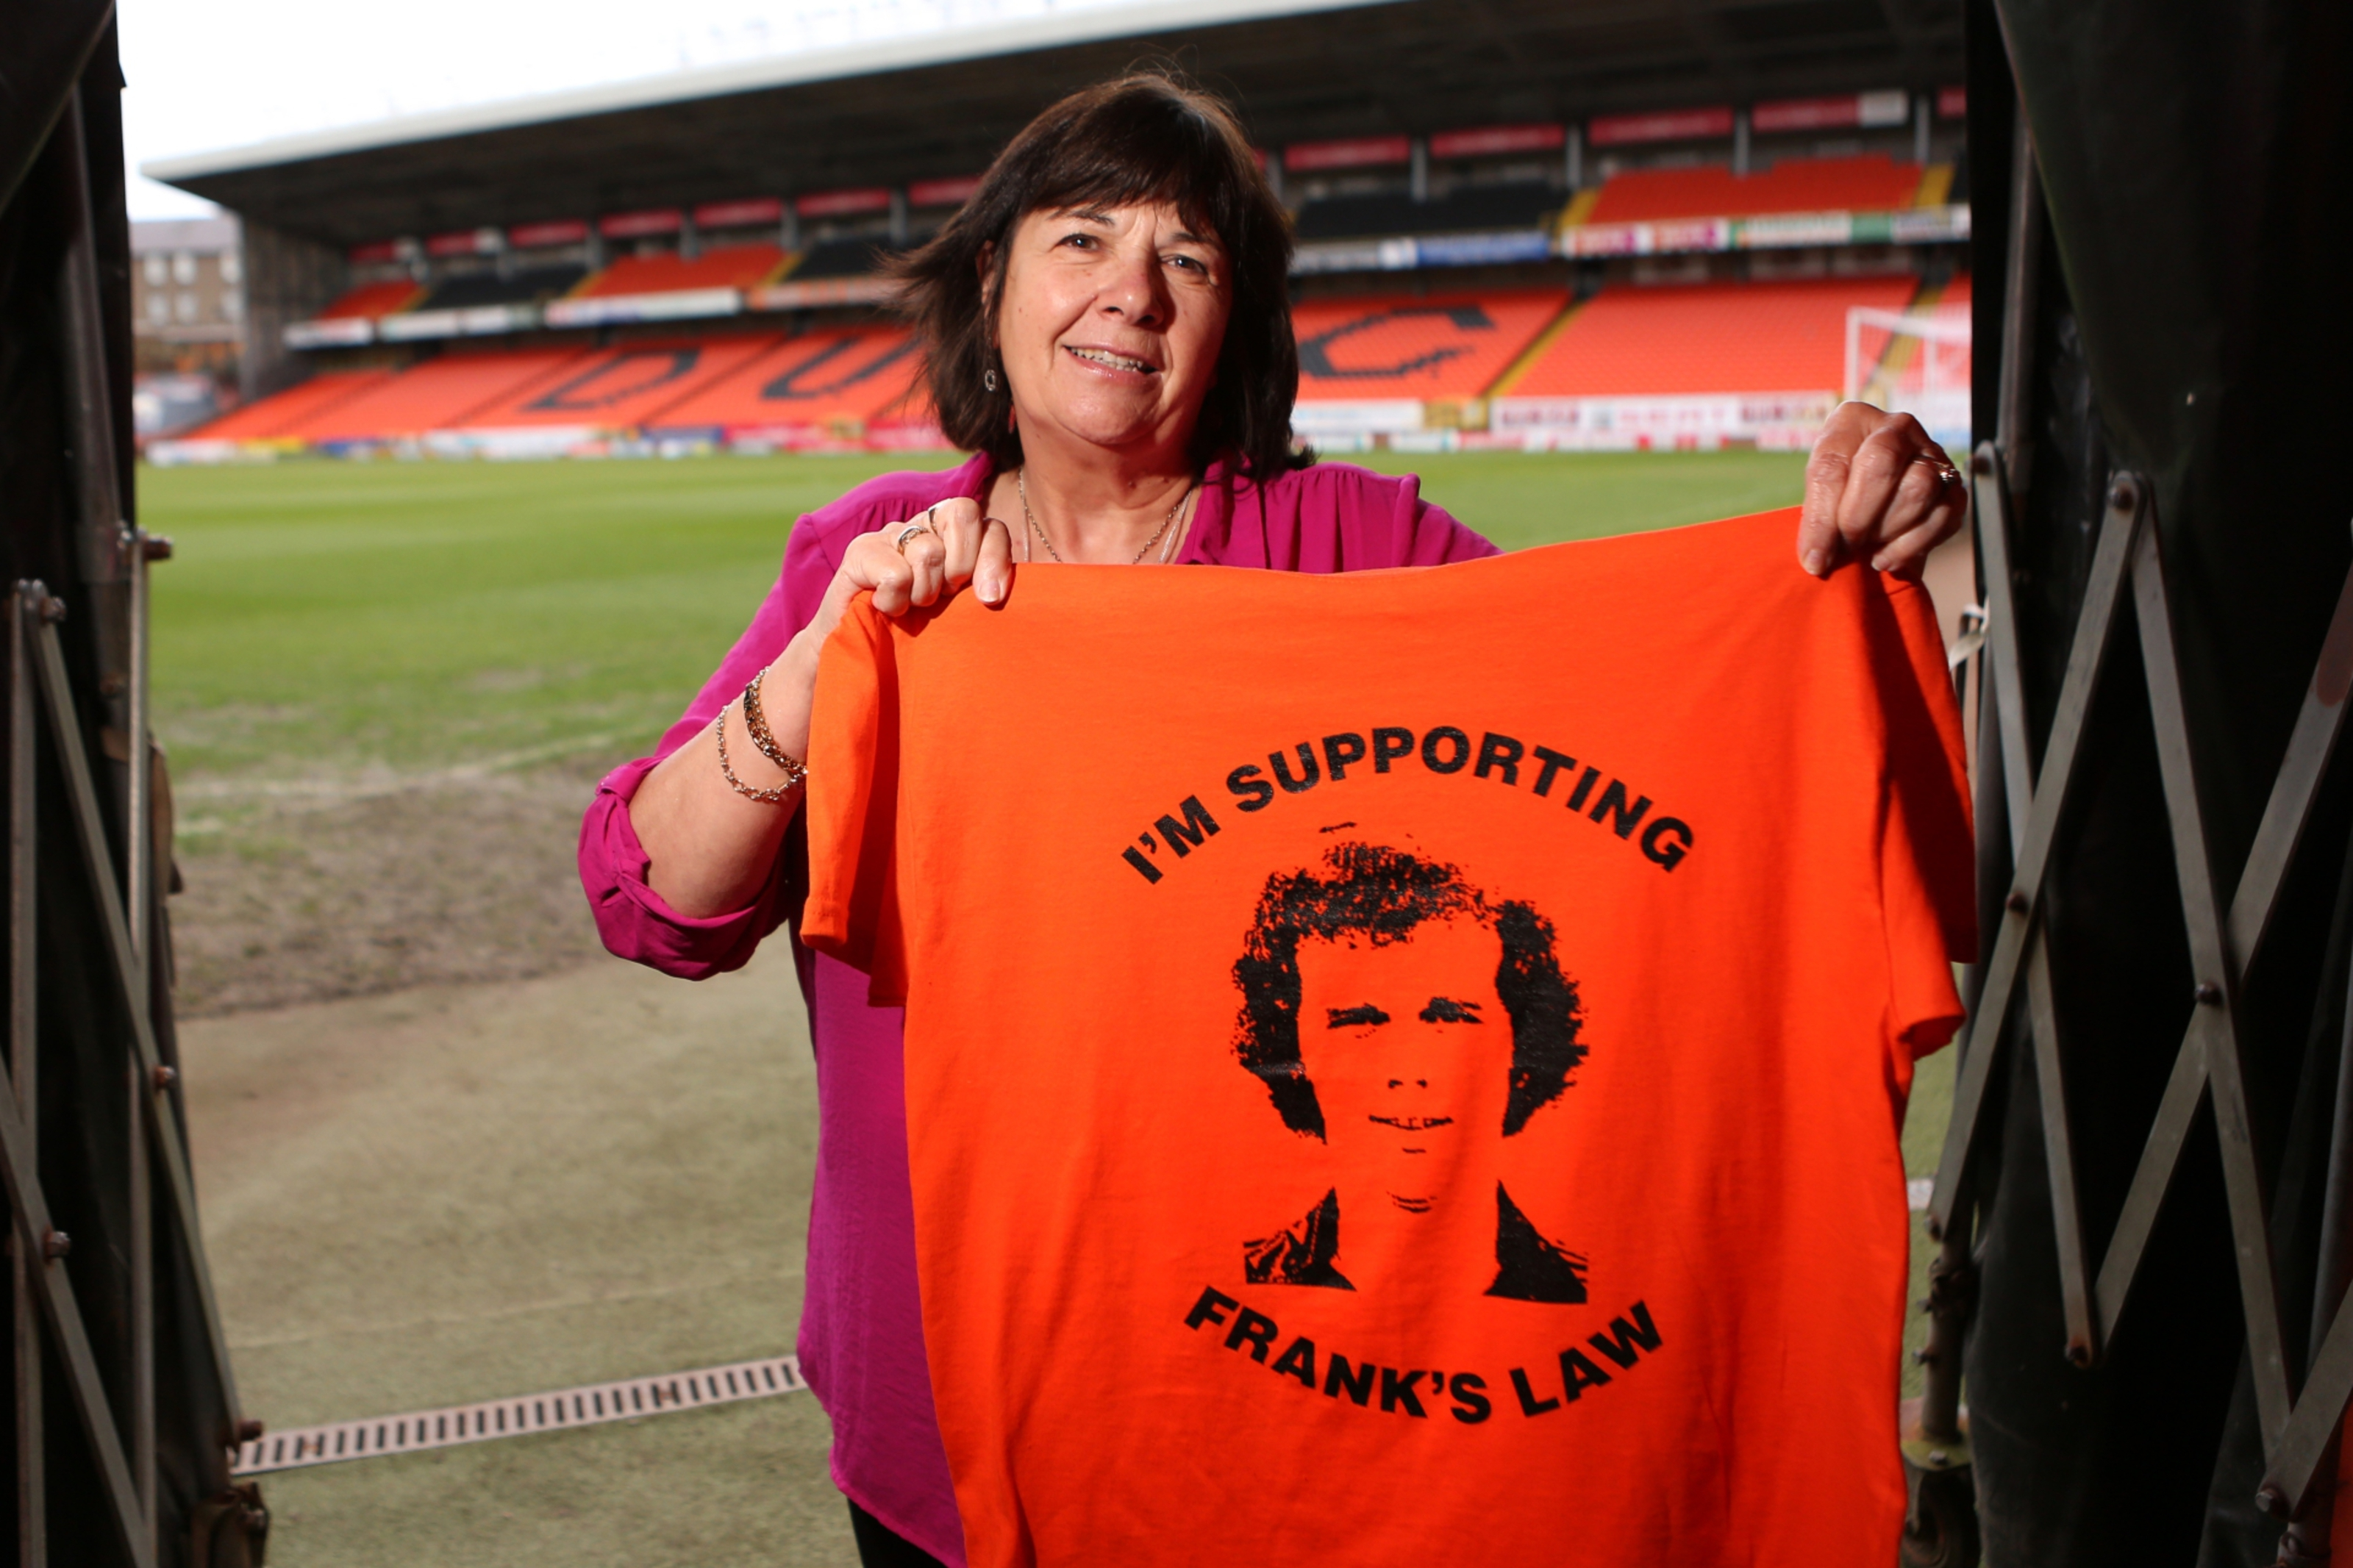 Amanda Kopel with one of the original Frank's Law t-shirts